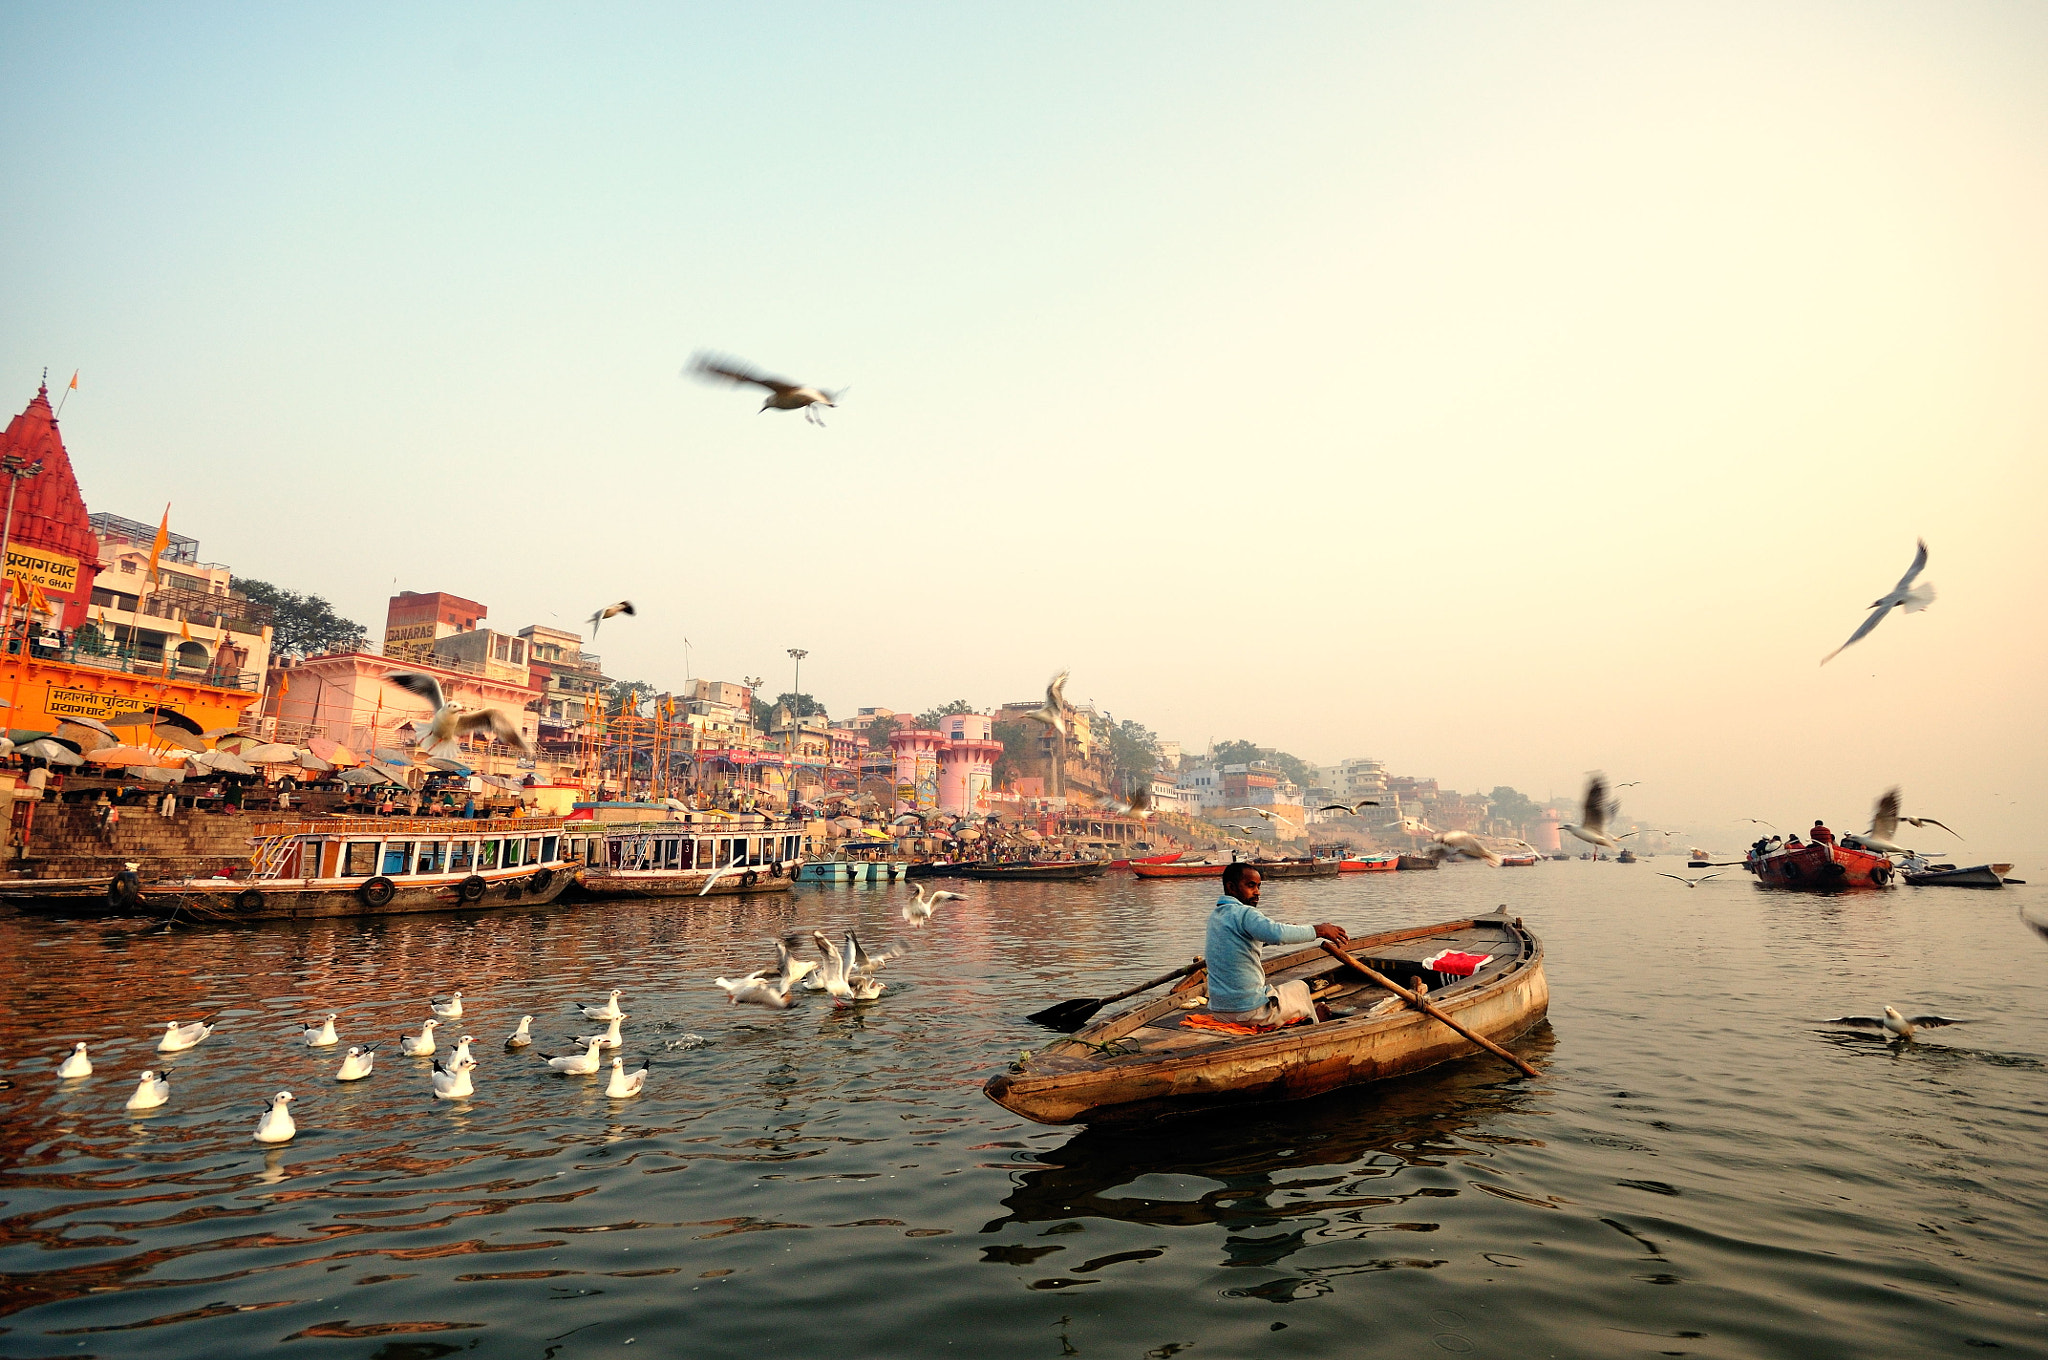 Photograph Boat on Ganges by Ulrich Lambert on 500px